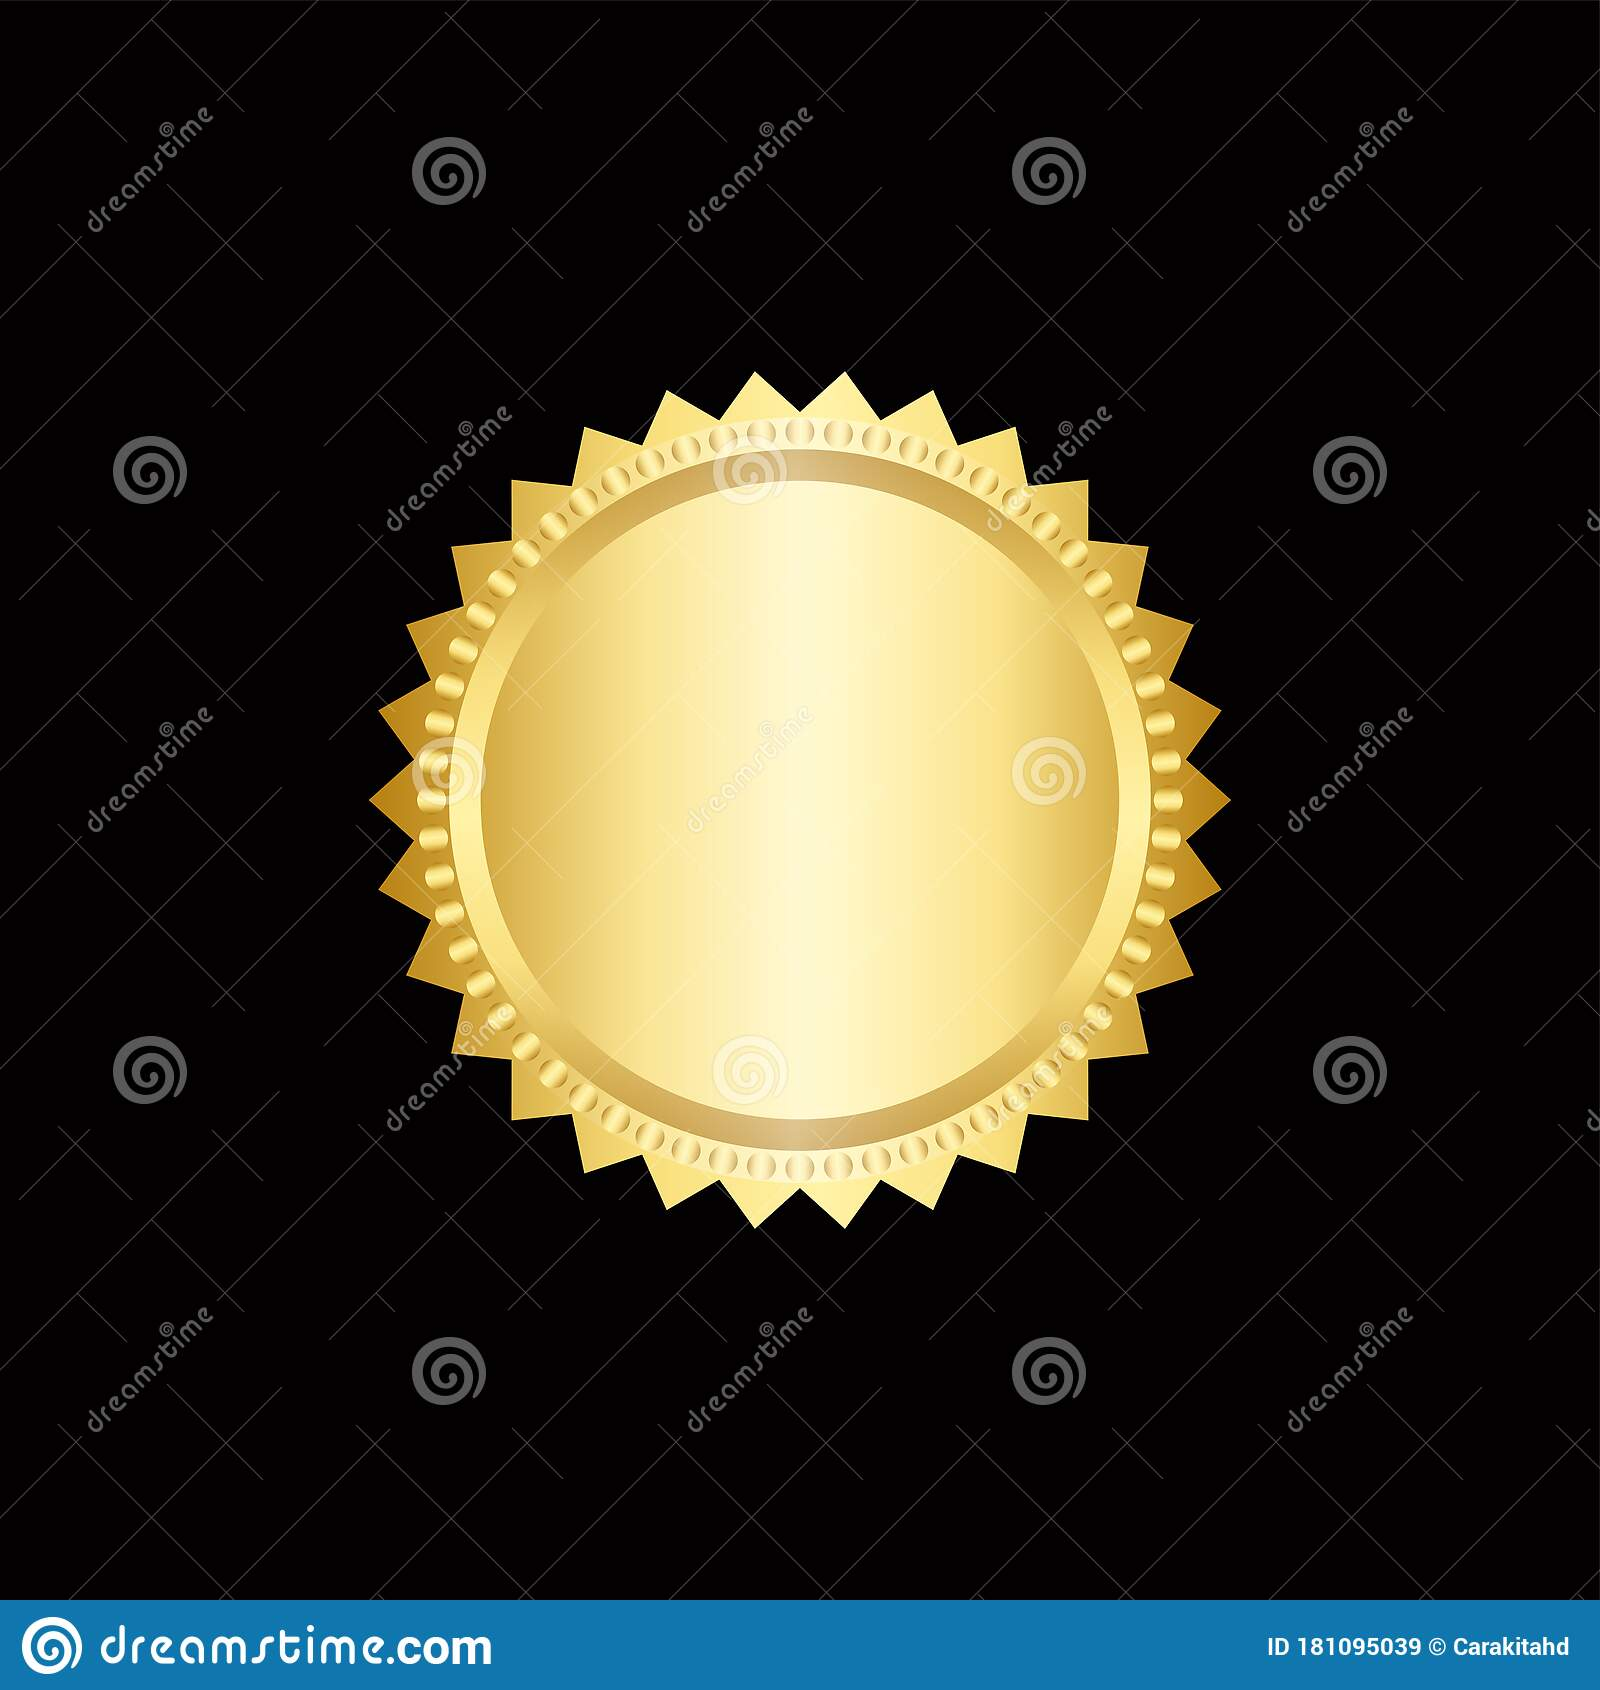 Round Golden Badge Isolated On A Black Background, Seal